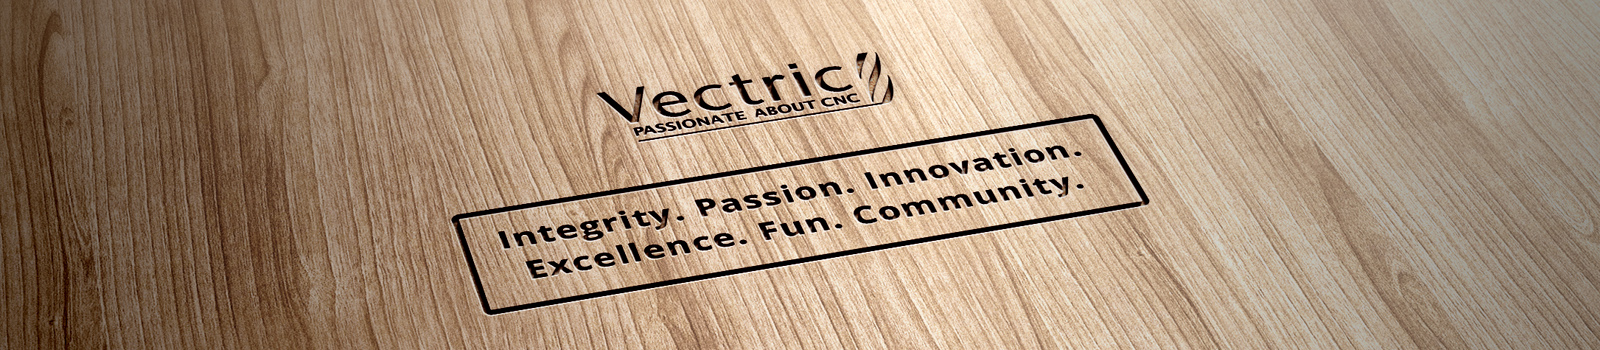 About Vectric